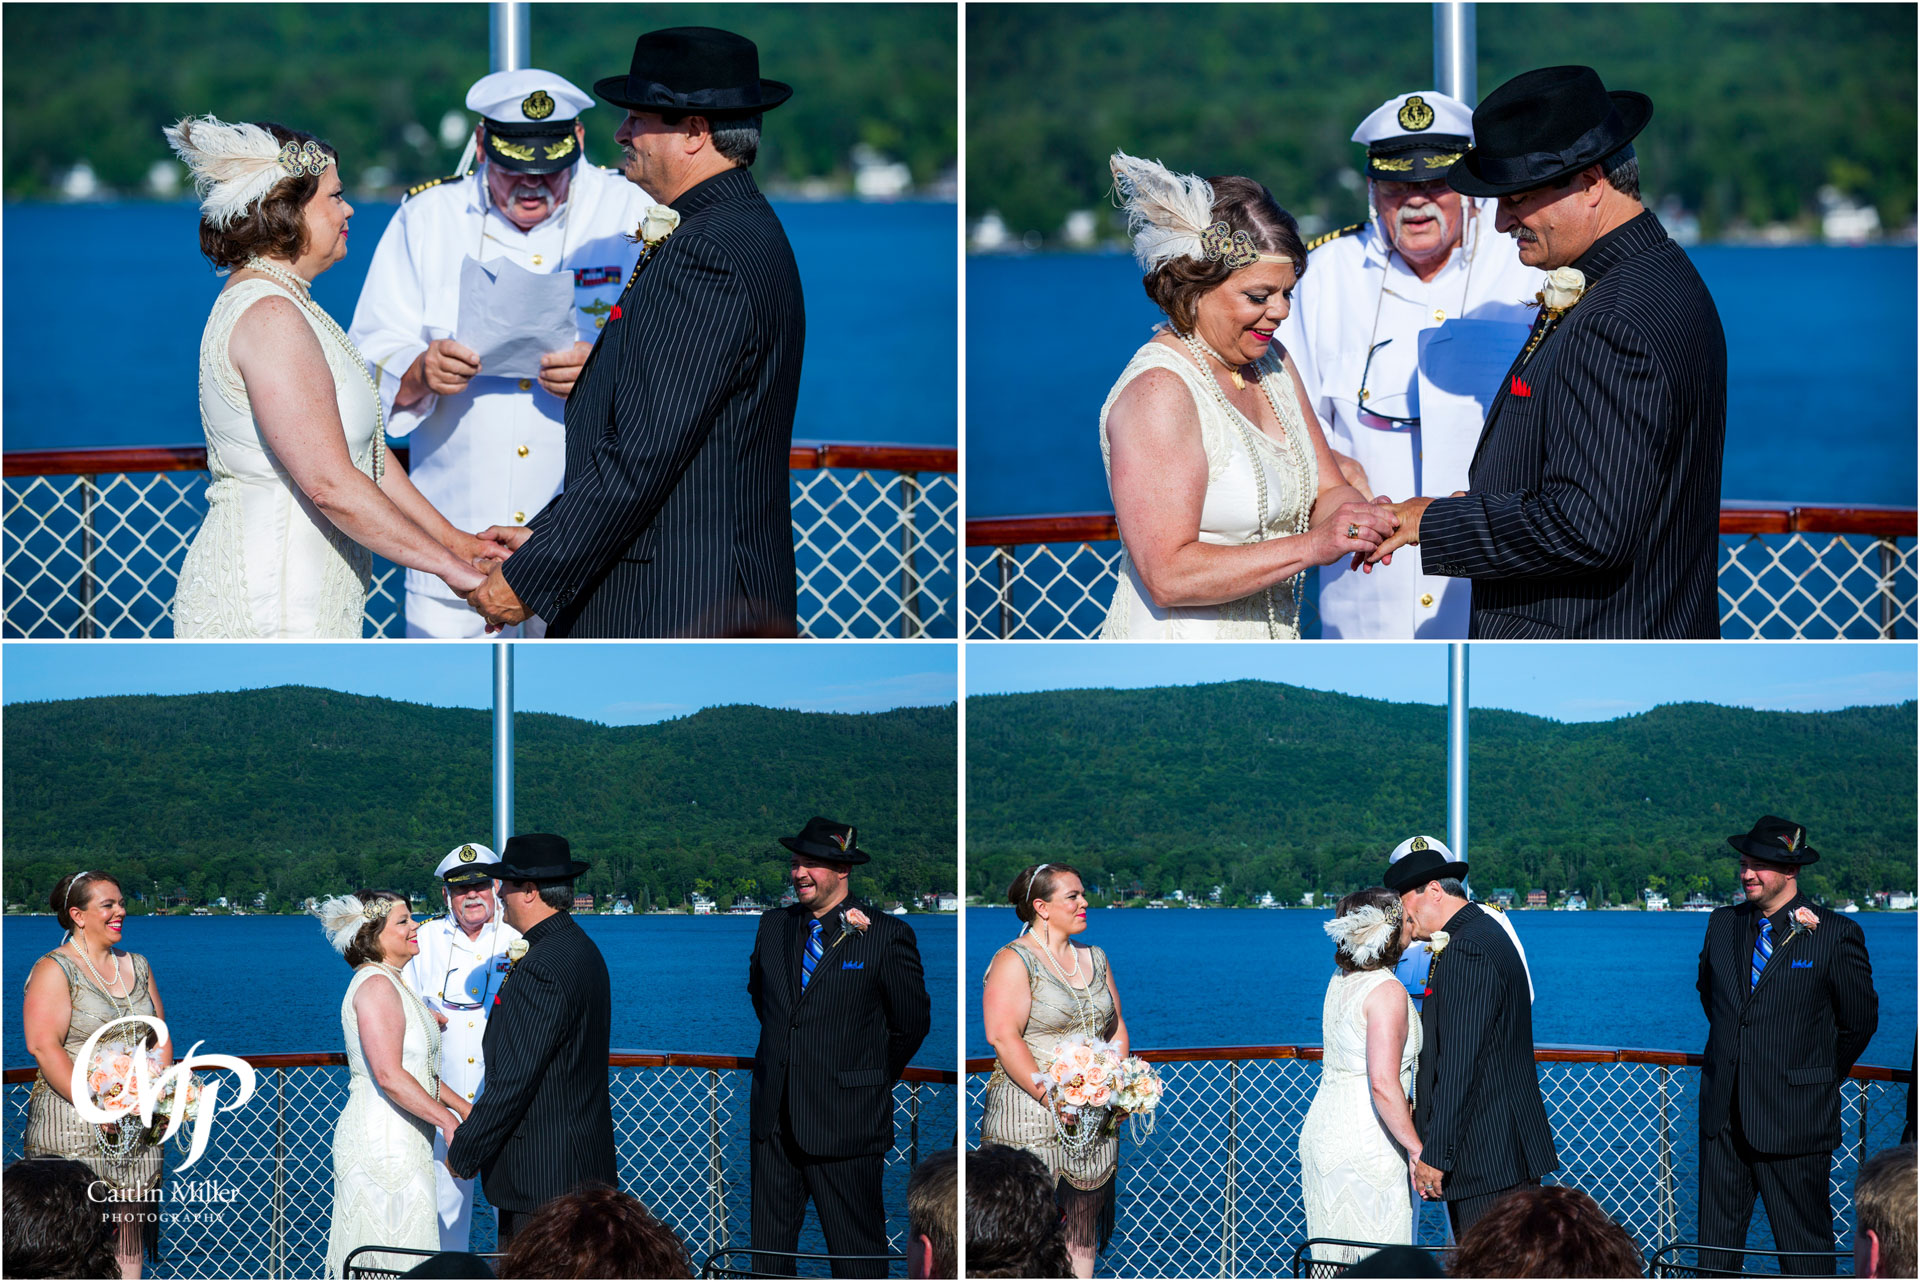 bombard-16.jpg from Jan and Robert's vow renewal on shoreline Cruise's Adirondac Boat on Lake George, NY by Saratoga Wedding Photographer Caitlin Miller Photography. Lake George Wedding Photographer. Stamford wedding photographer. Albany wedding photographer. Shoreline Cruises Wedding Photographer. Saratoga Wedding Photographer